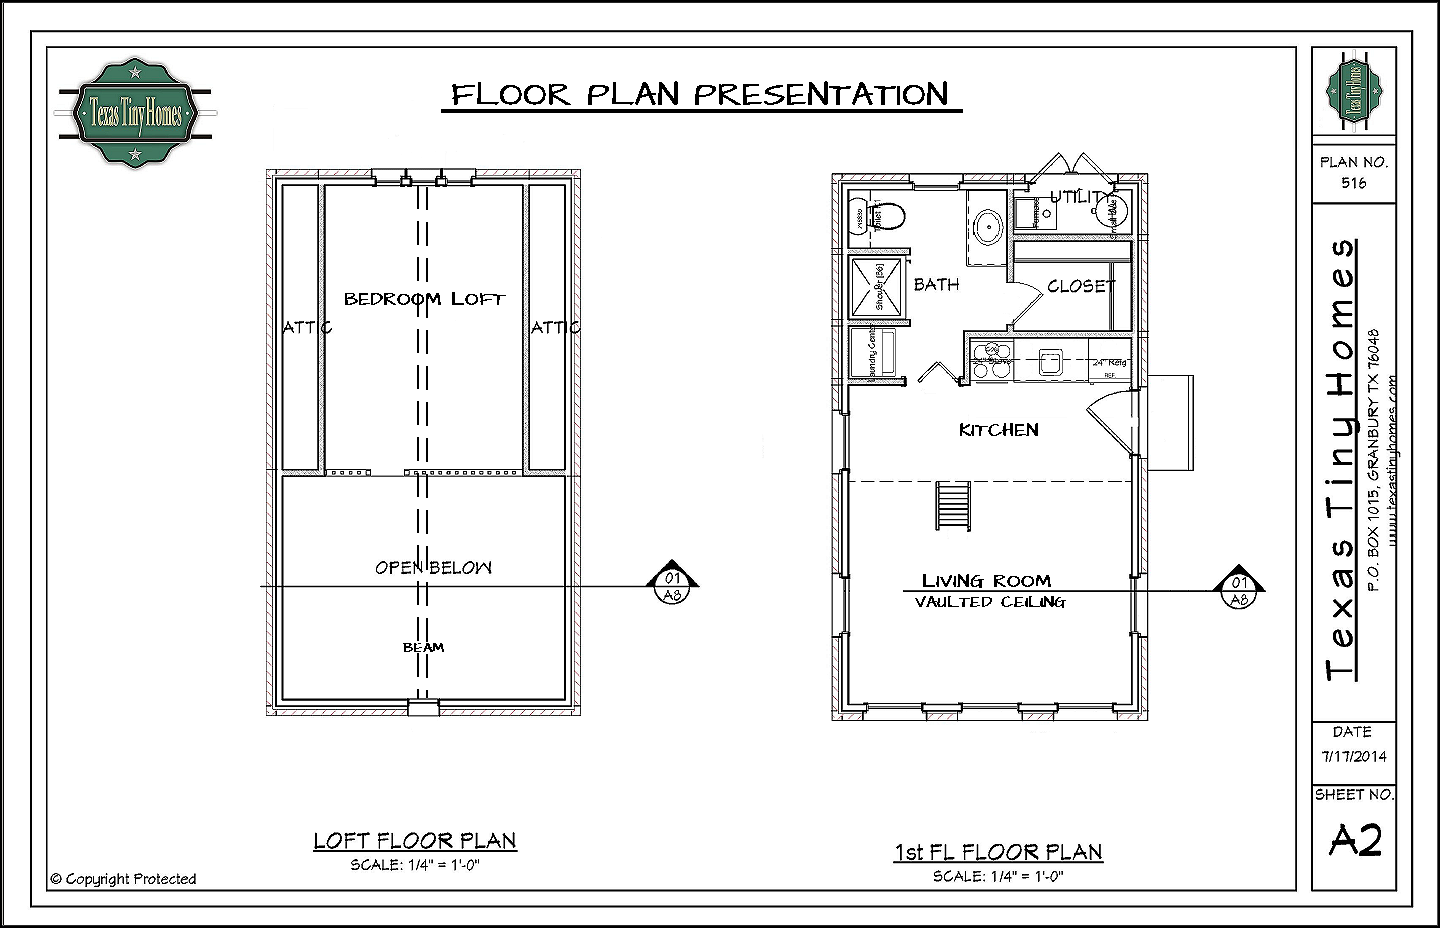 Texas tiny homes plan 516 for Micro home plans